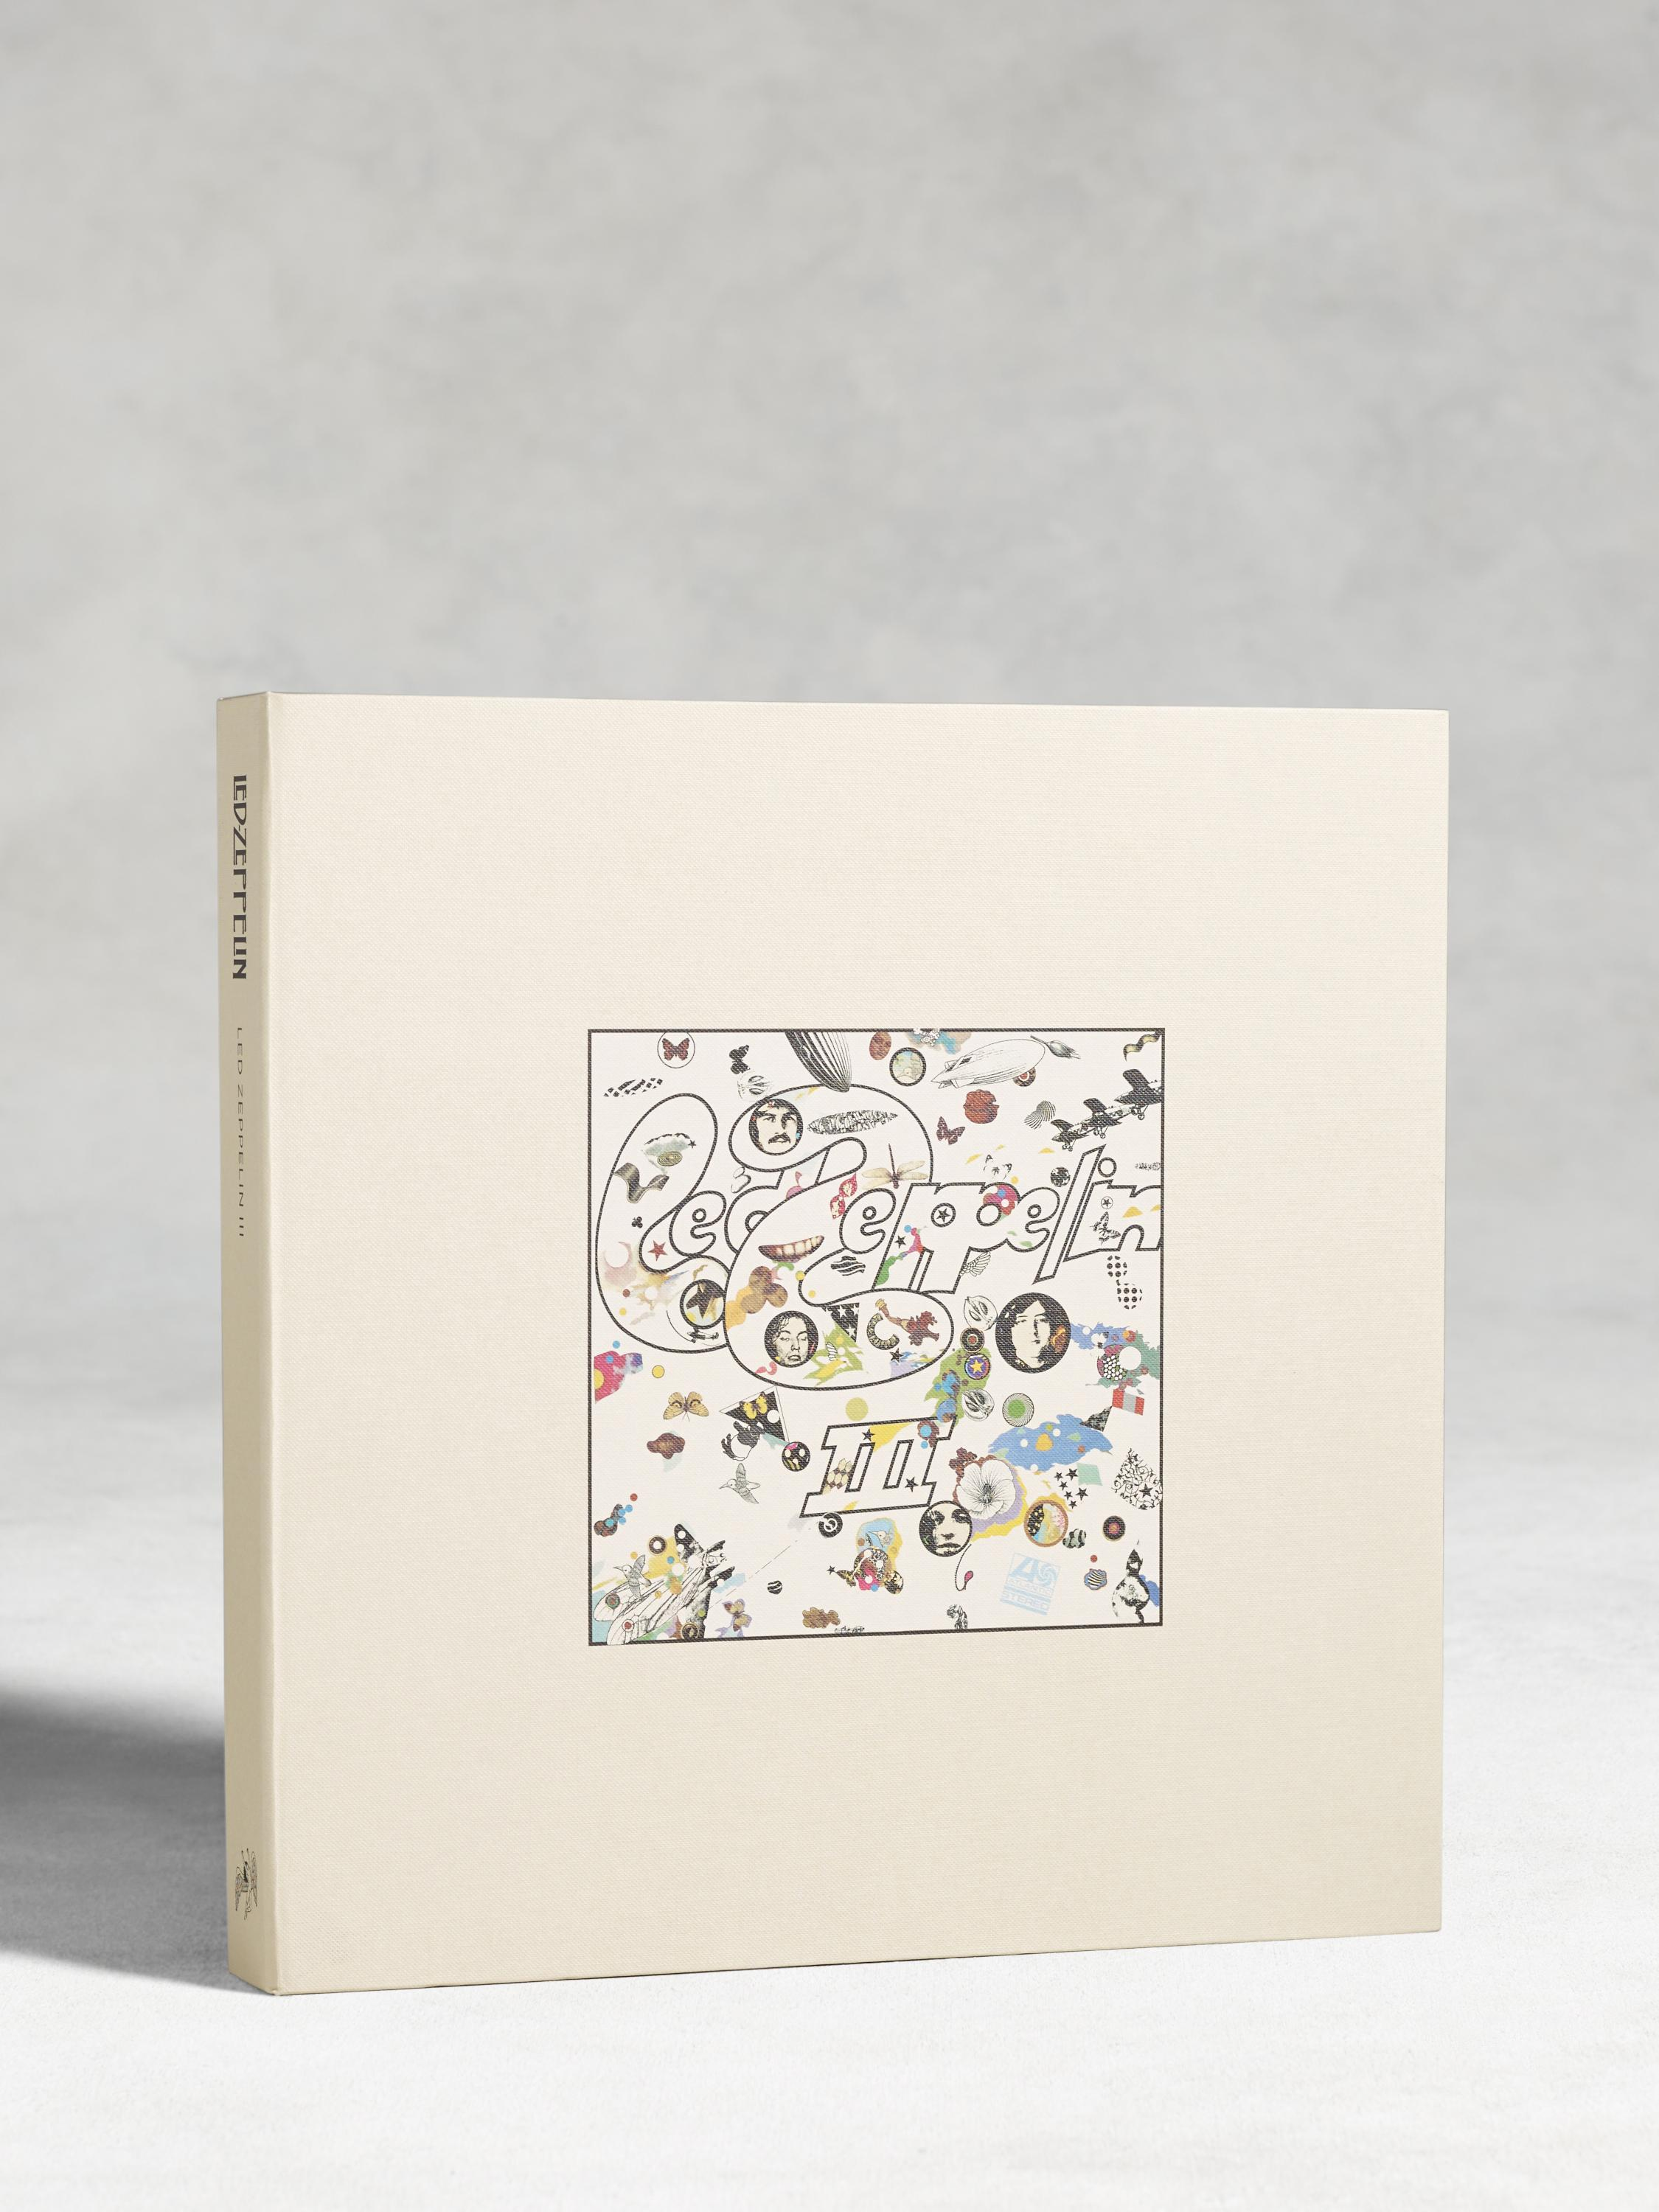 Led Zeppelin - Led Zeppelin III Super Deluxe Edition Box Set